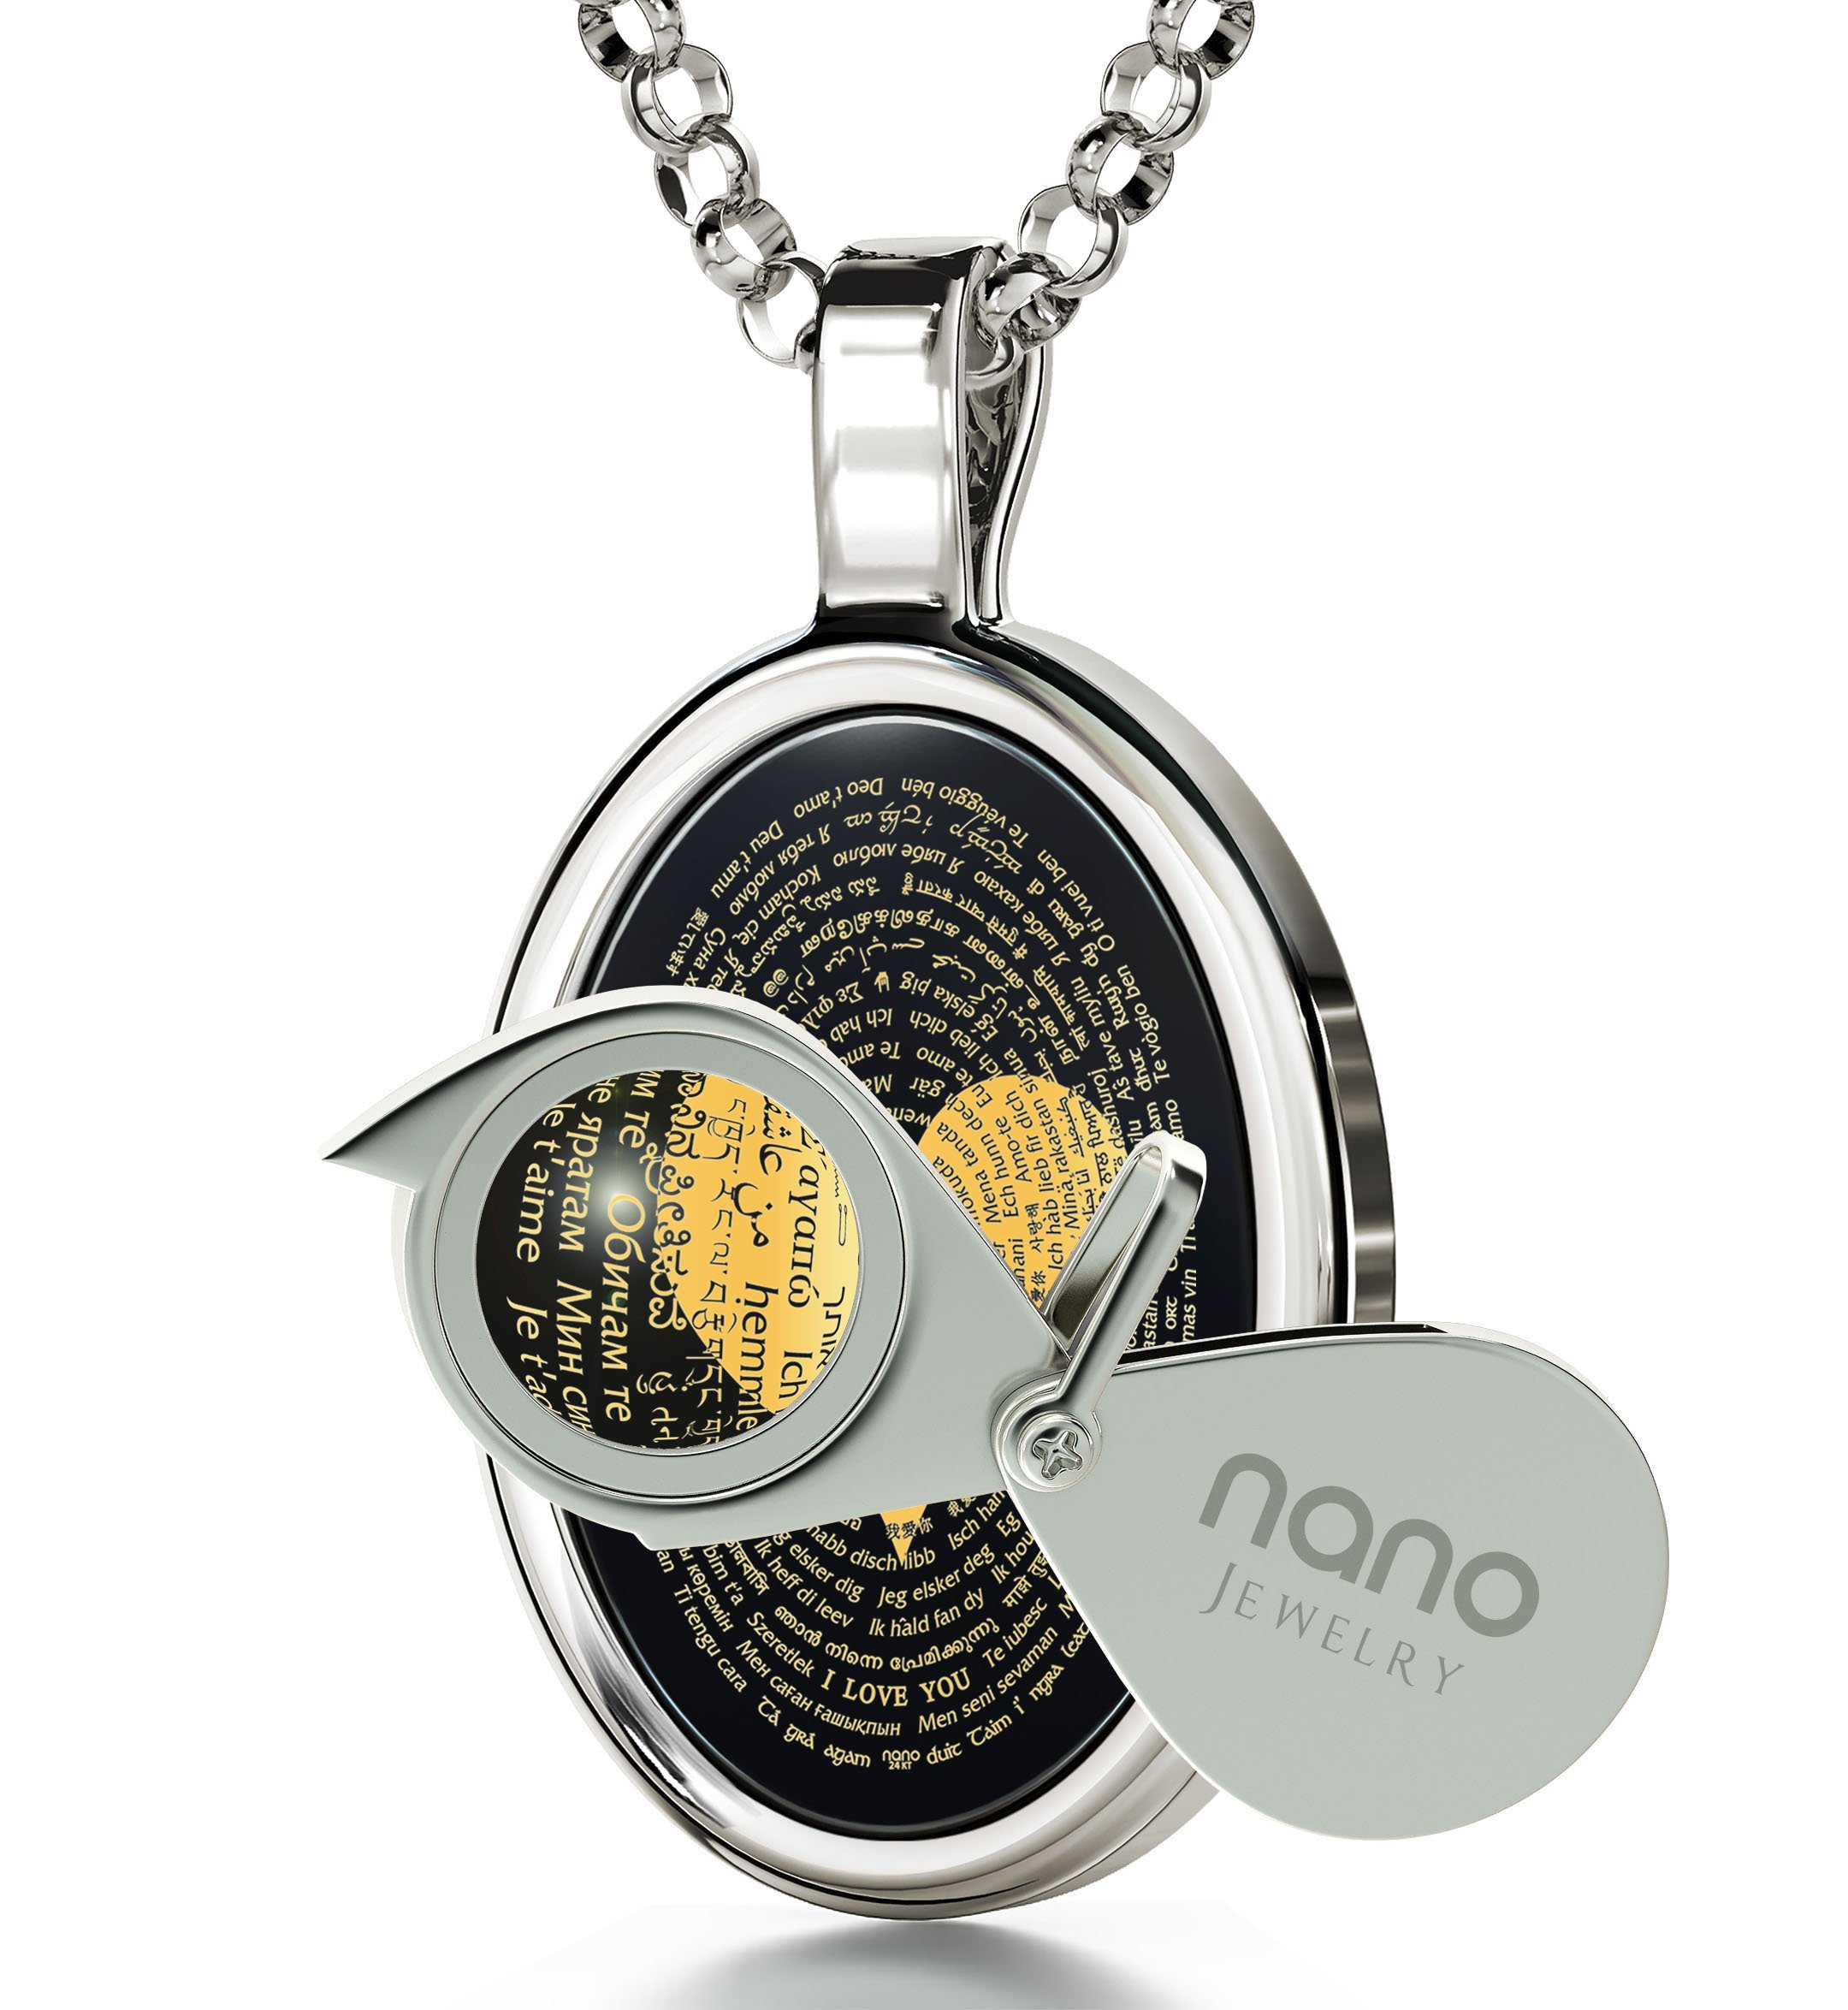 925 Sterling Silver Love Necklace 24k Gold Inscribed with I Love You in 120 Languages Including Braille and Sign Language on Oval Black Onyx Gemstone Anniversary Pendant, 18'' Chain by Nano Jewelry